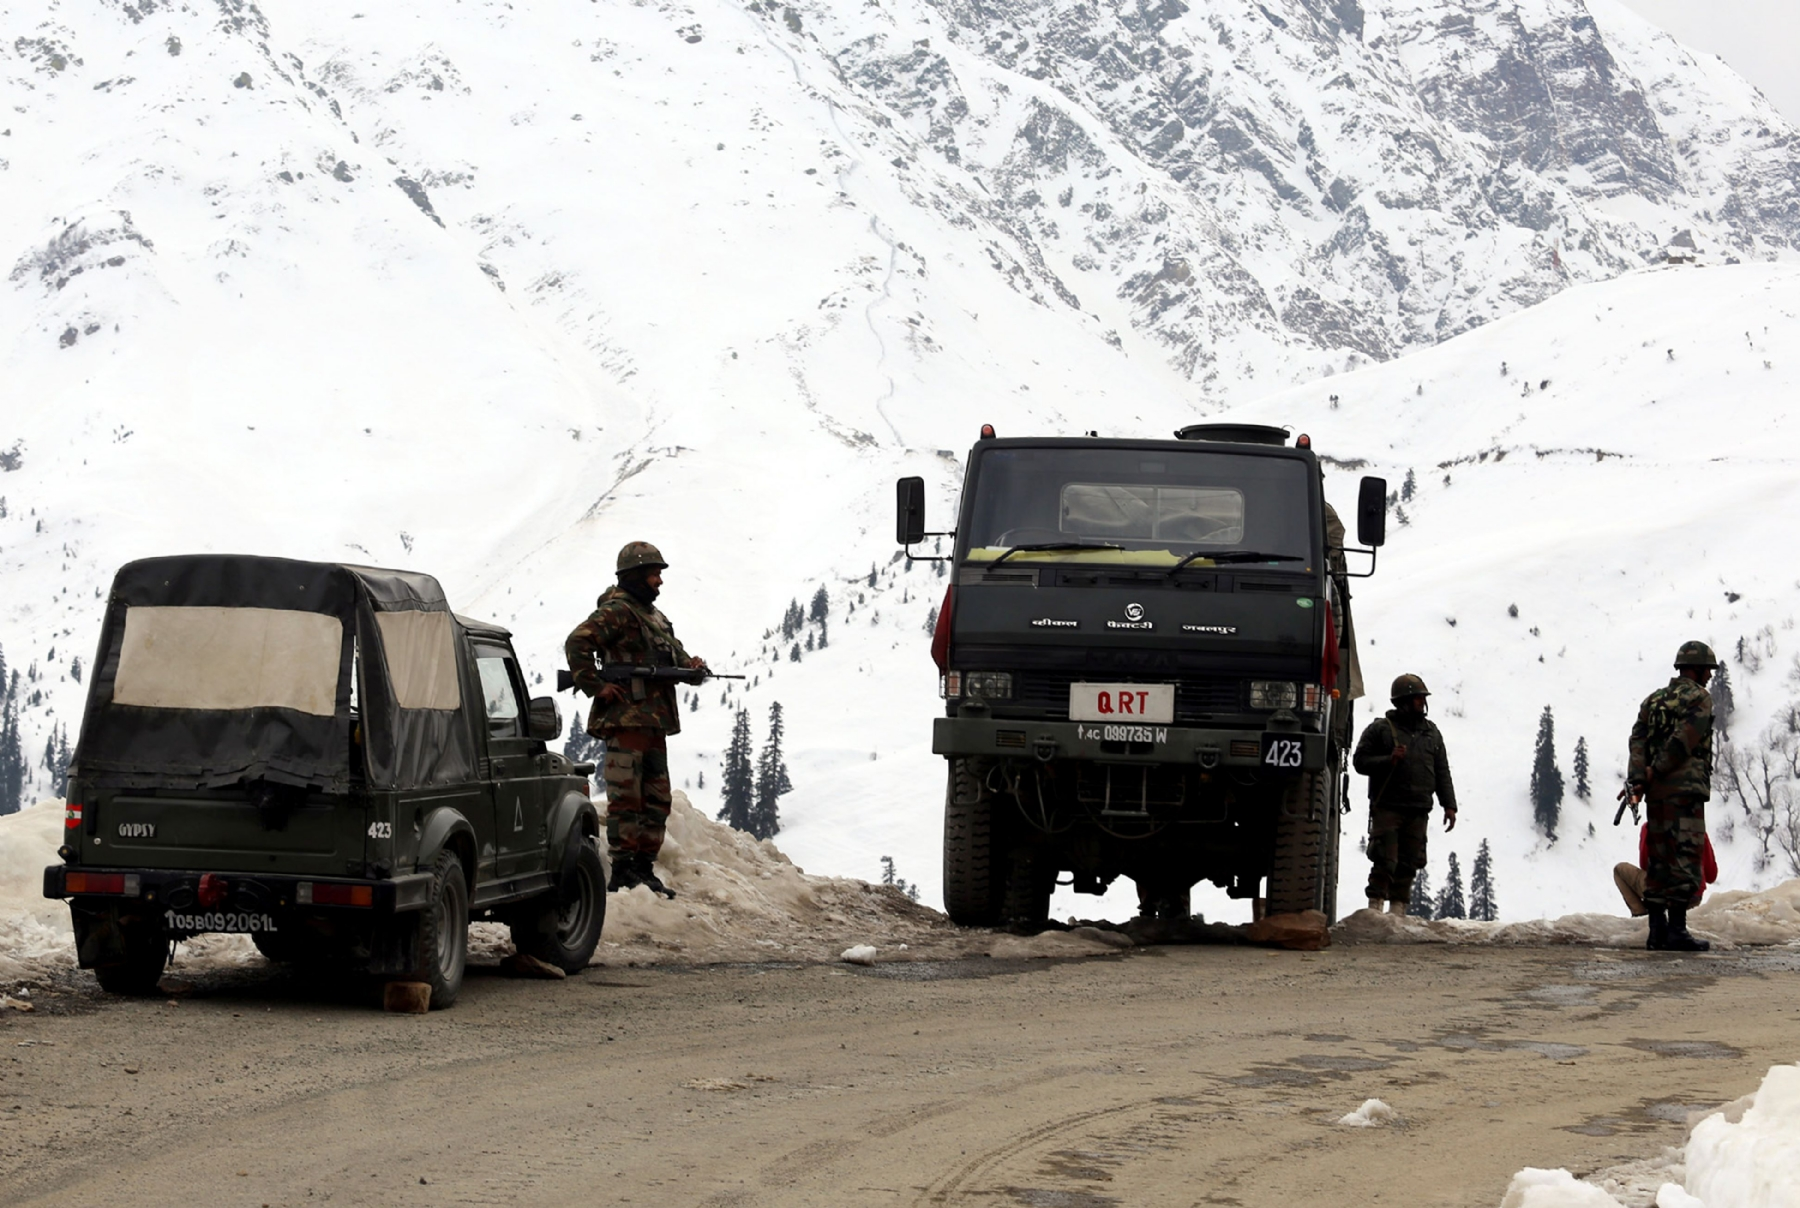 Three heavily-armed militants storm Army camp in J&K, killed